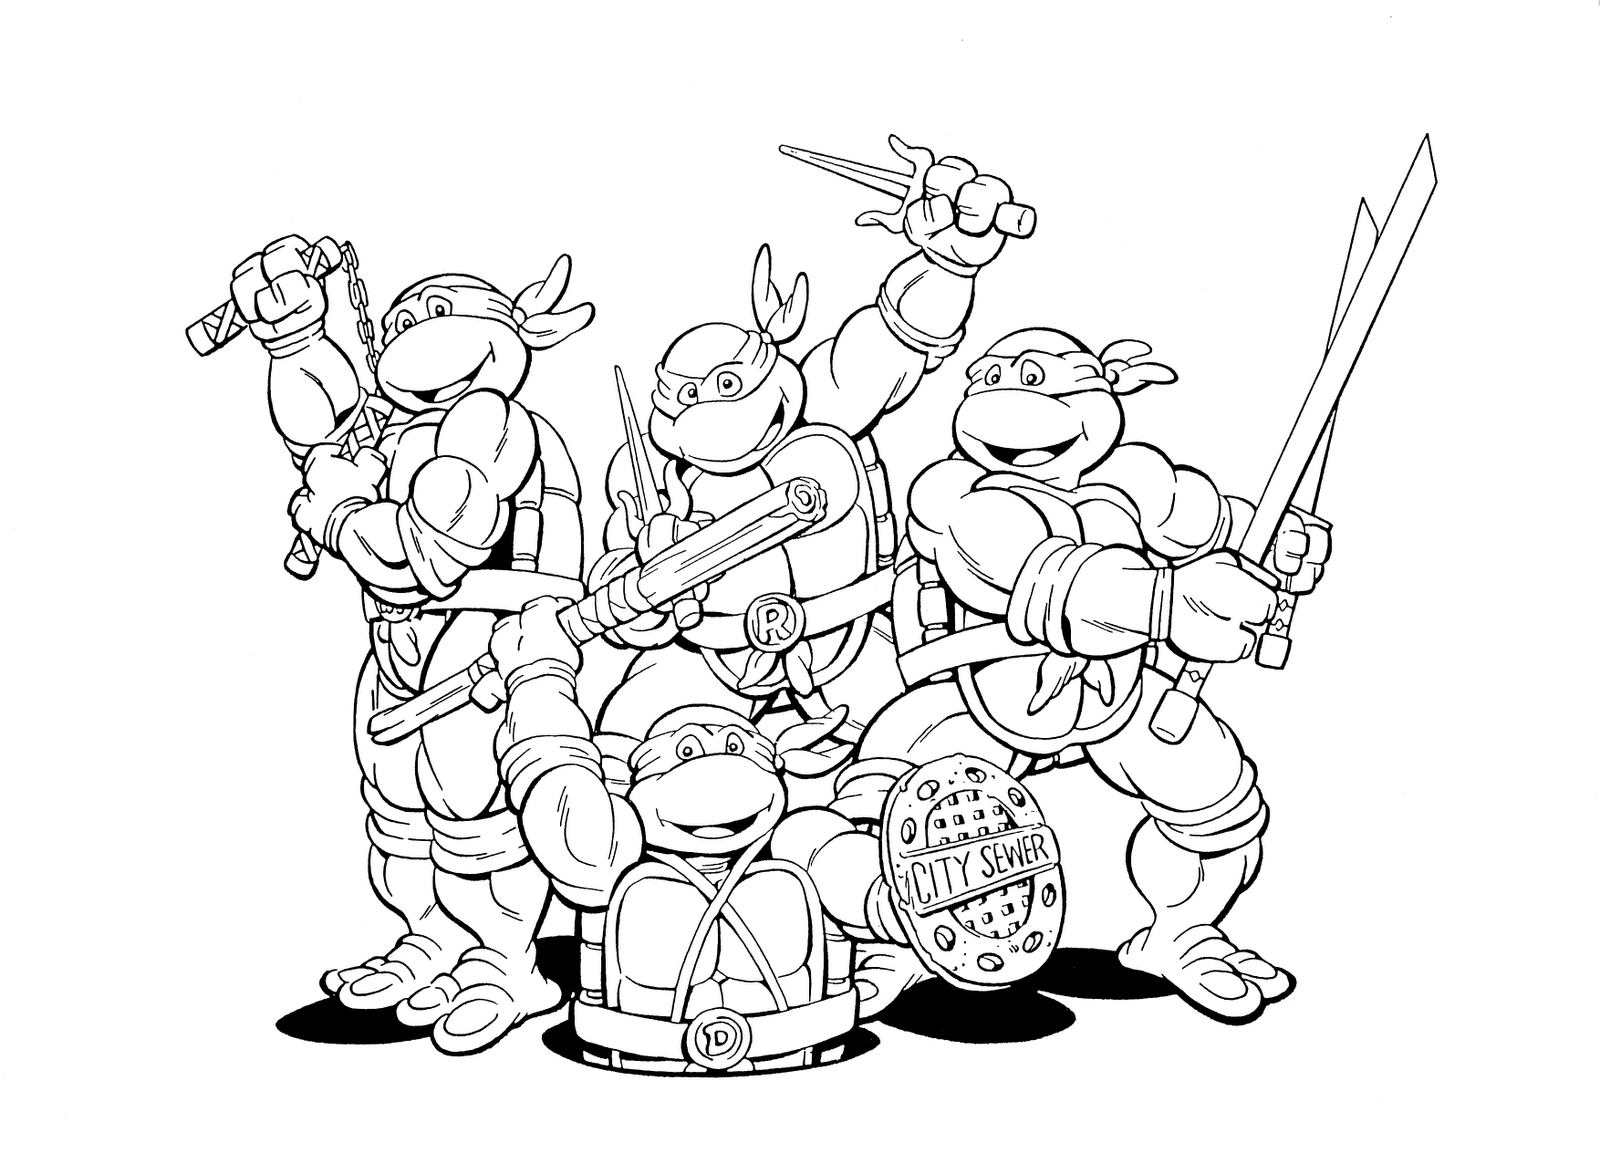 ninja turtles color teenage mutant ninja turtles coloring pages best ninja turtles color